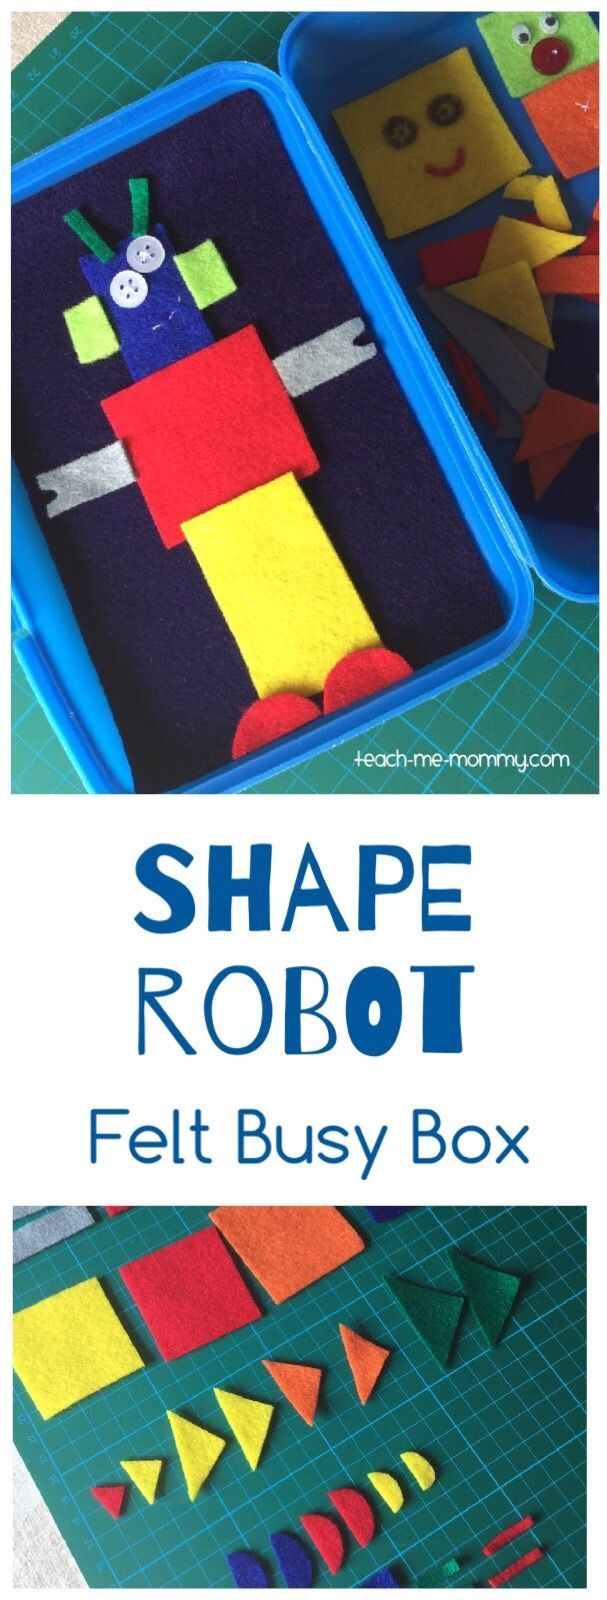 Shape Robot Felt Busy Box Make a fun shape robot busy box from felt and a lunch box to play on the go!